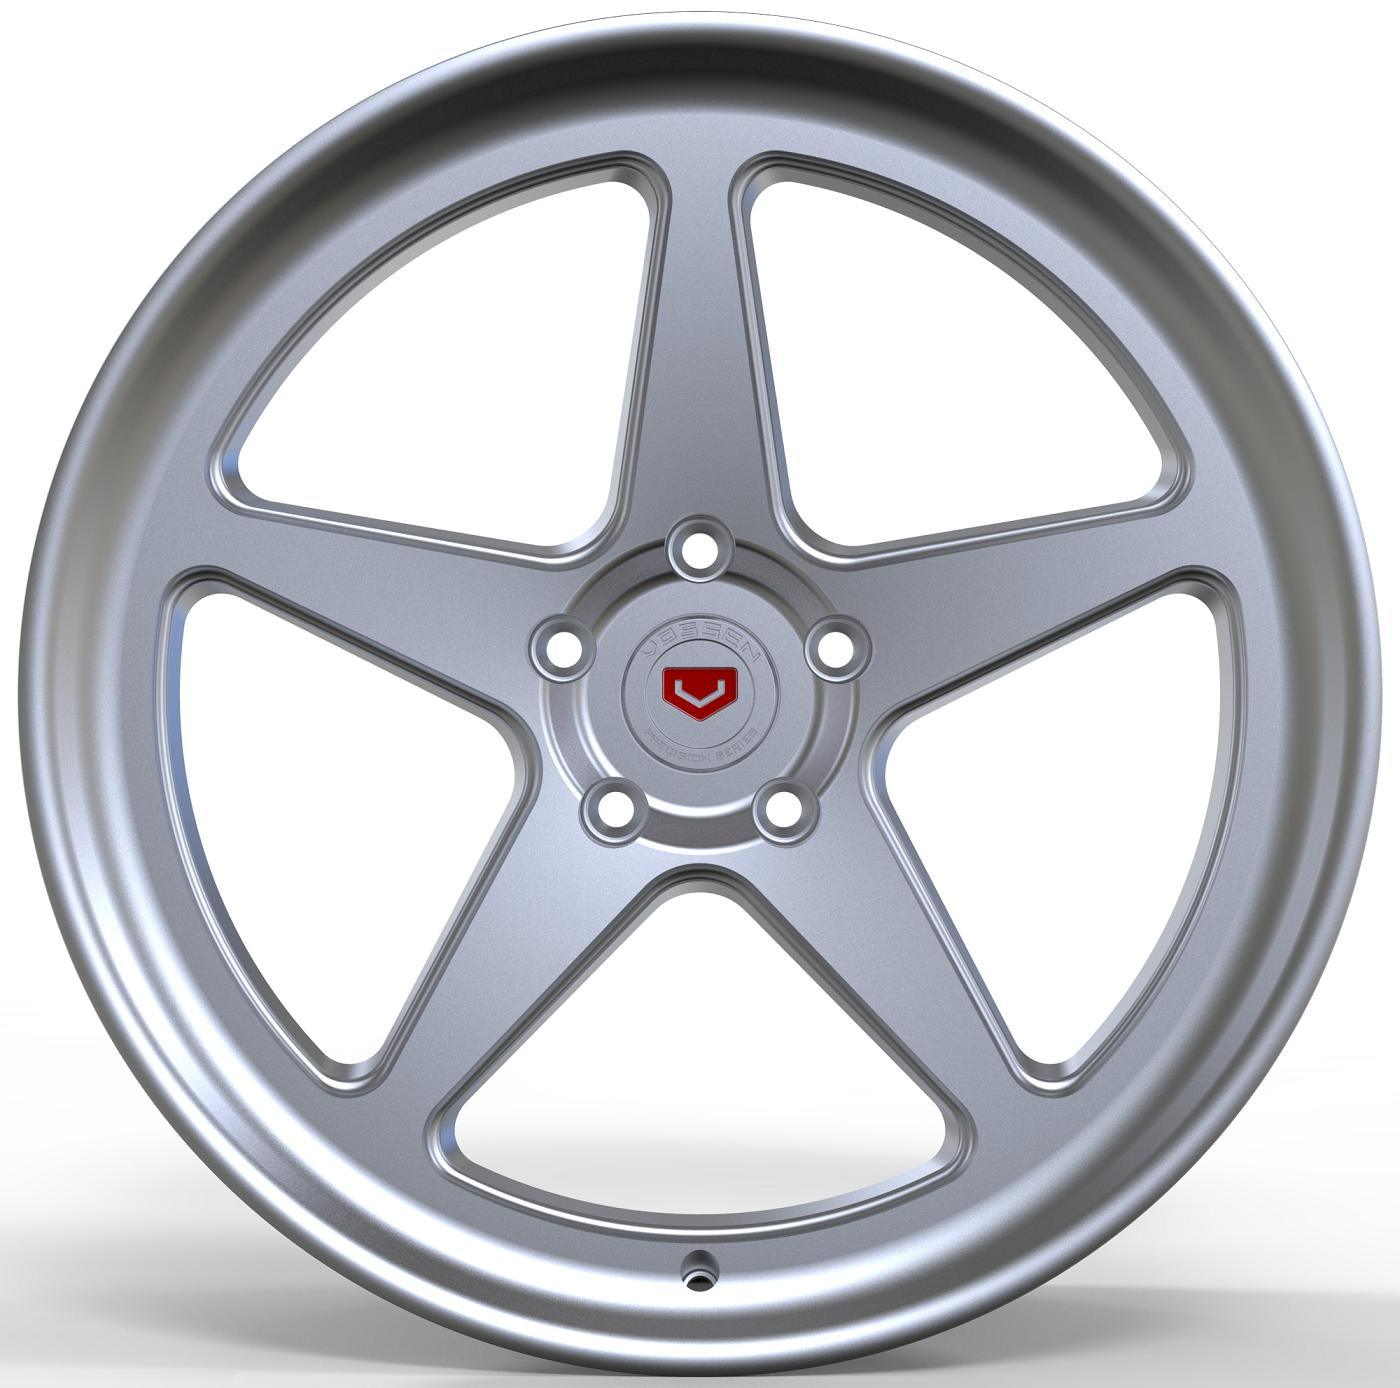 Aftermarket wheels with MB face UFO-5058